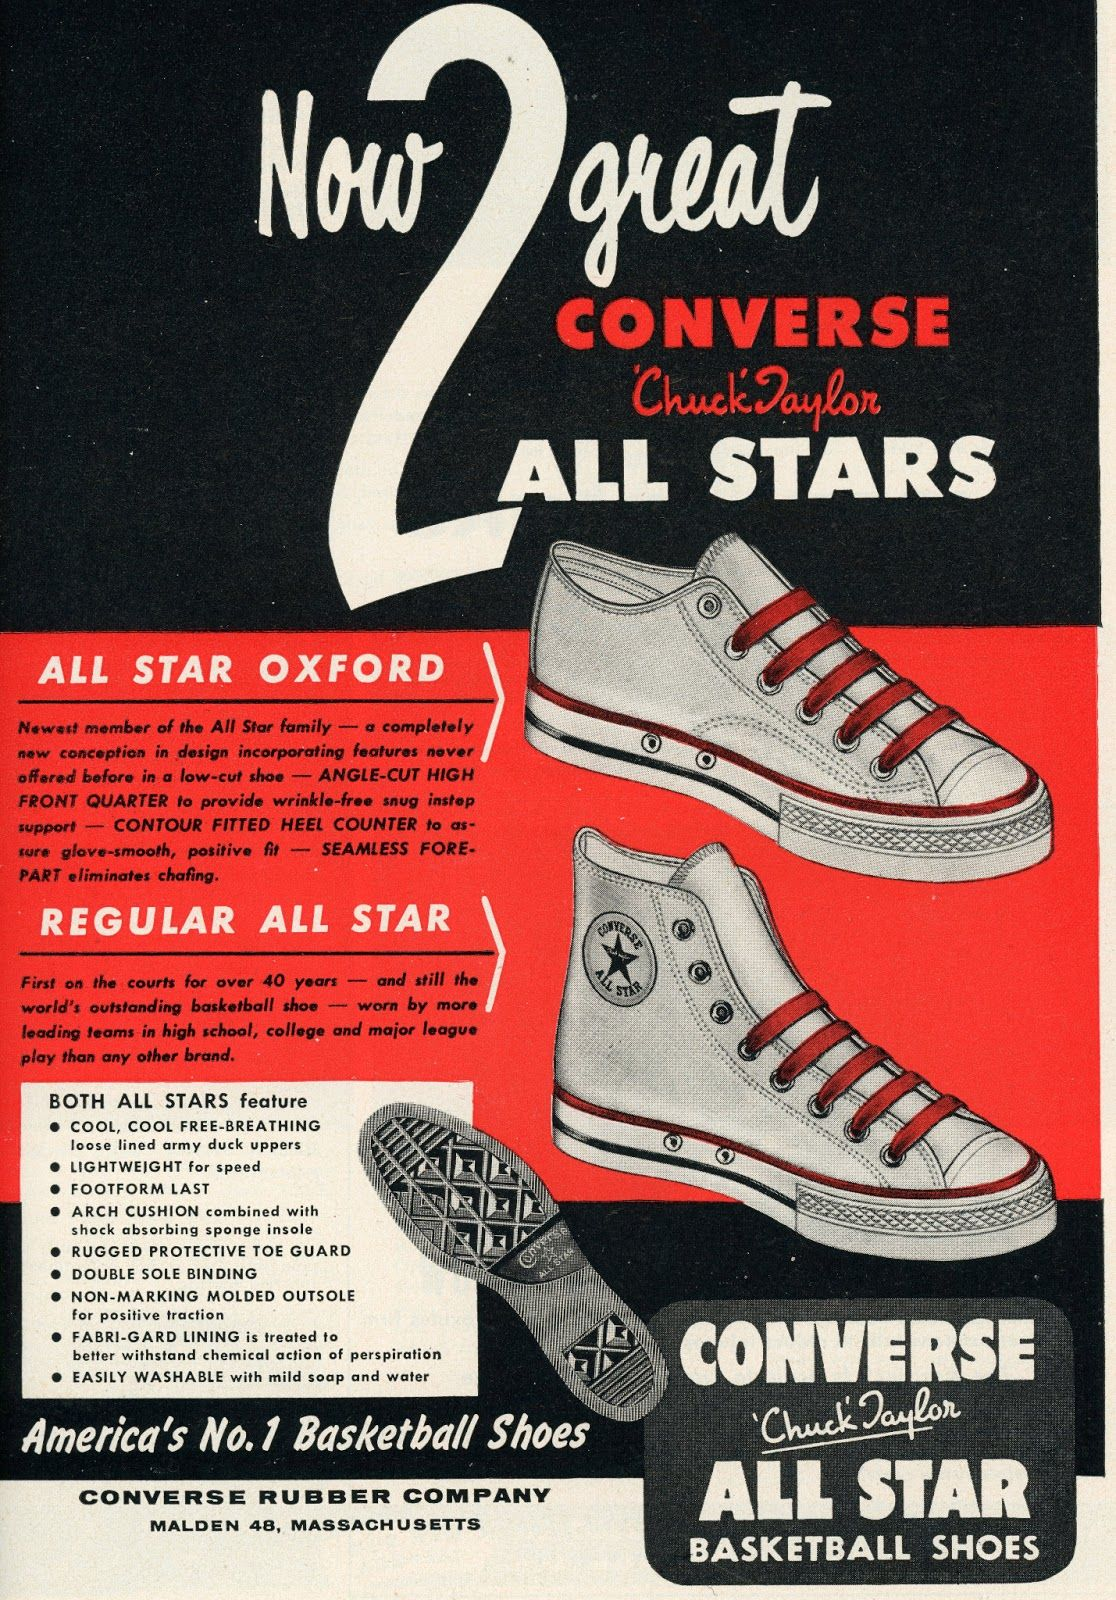 Chucks Converse vintage, illustration Sneakers, Chuck taylors  Converse vintage, Sneakers illustration, Chuck taylors